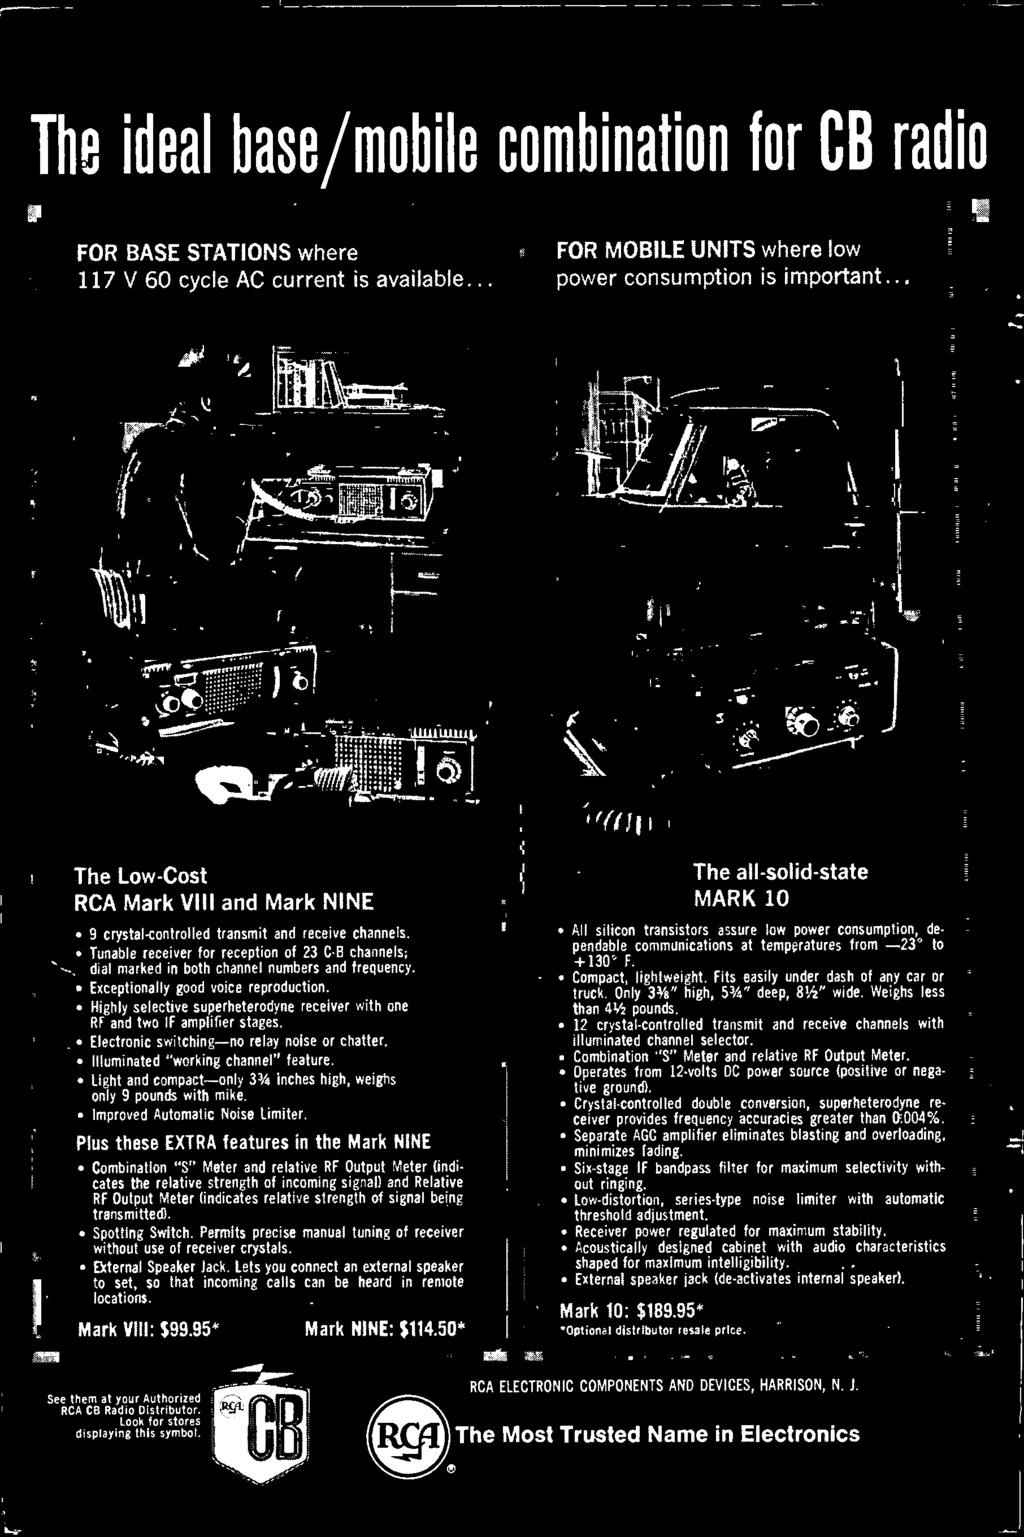 8 PAGE CBOPERIOR'S GUIDE - PAGE 35  APRIL Oc  'The OFFICIAL CB RADIO